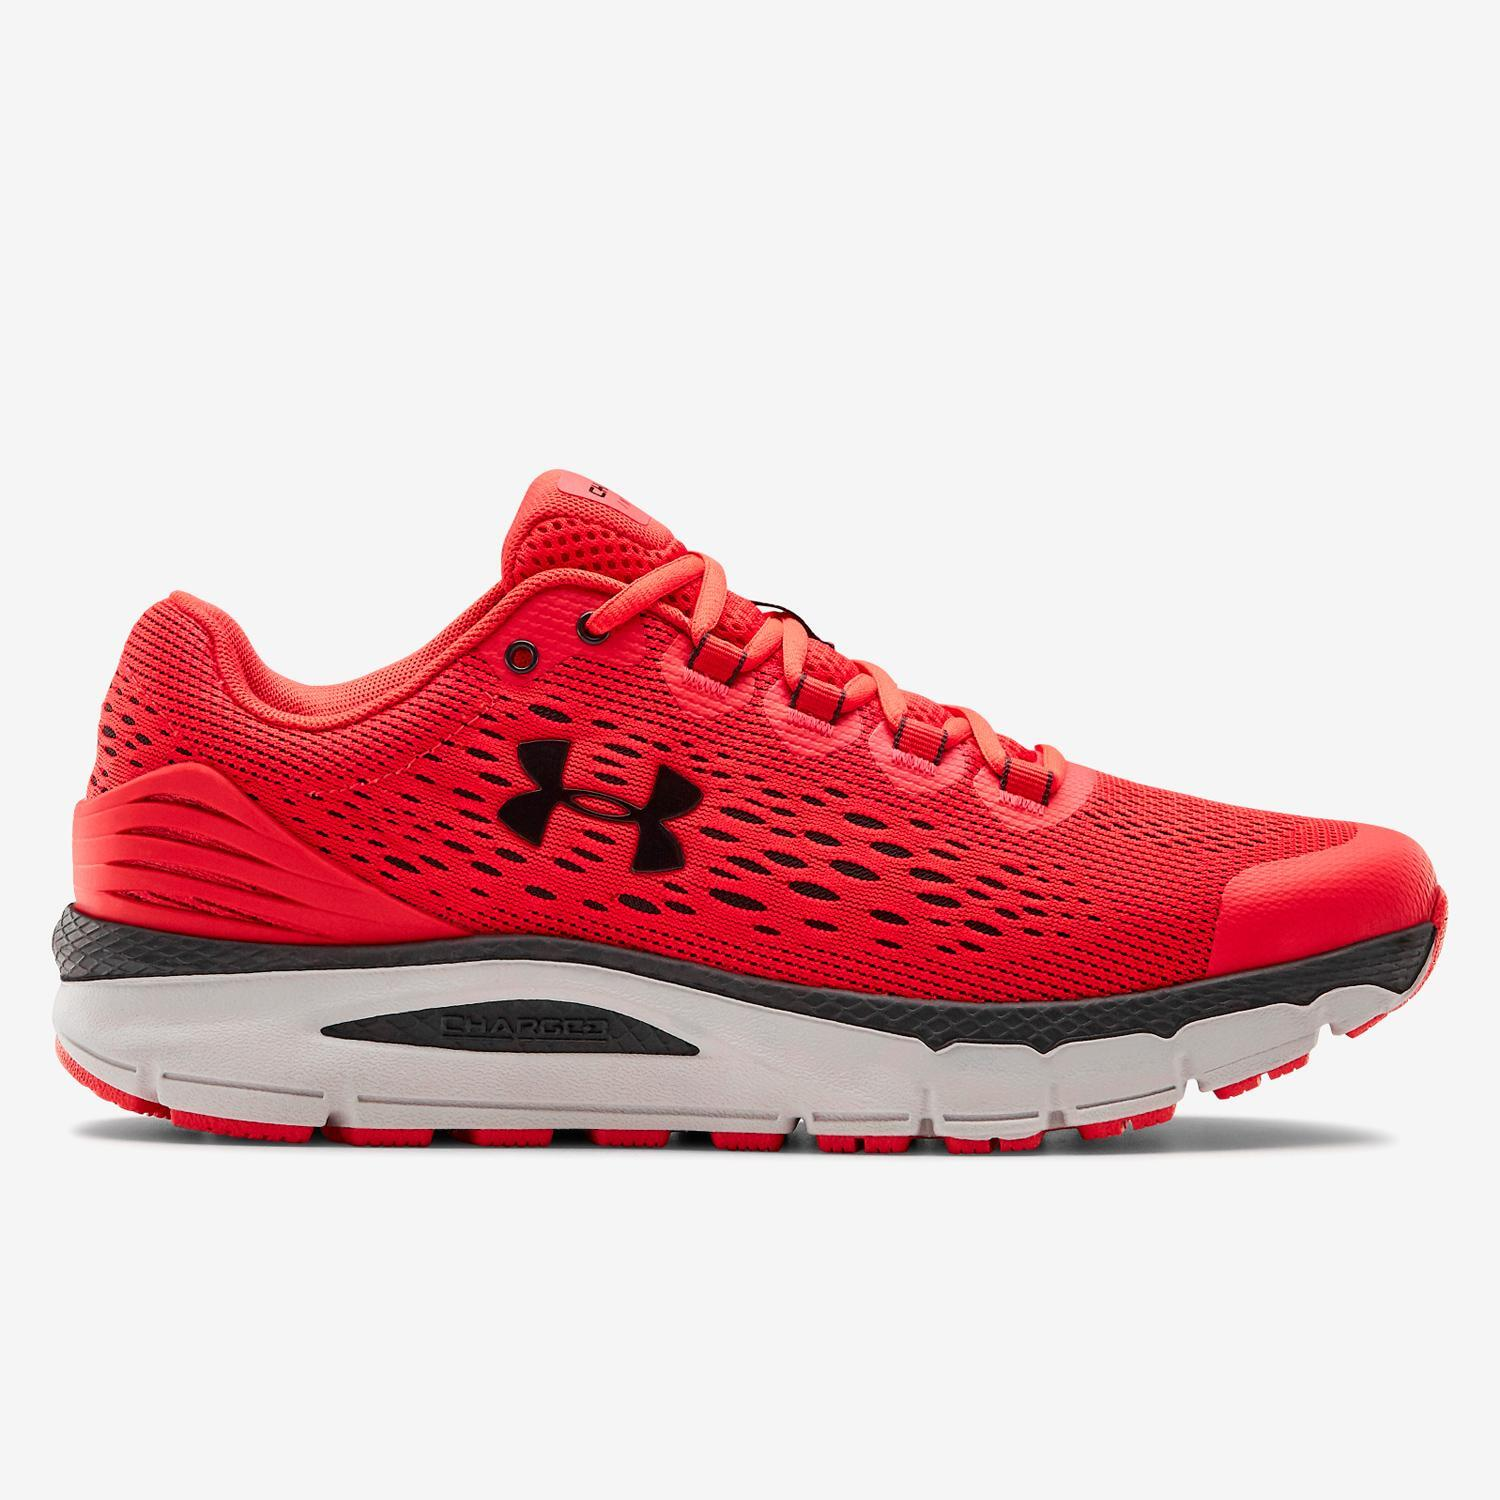 Under Armour Charged Intake 4 - Rojo - Zapatillas Running Hombre